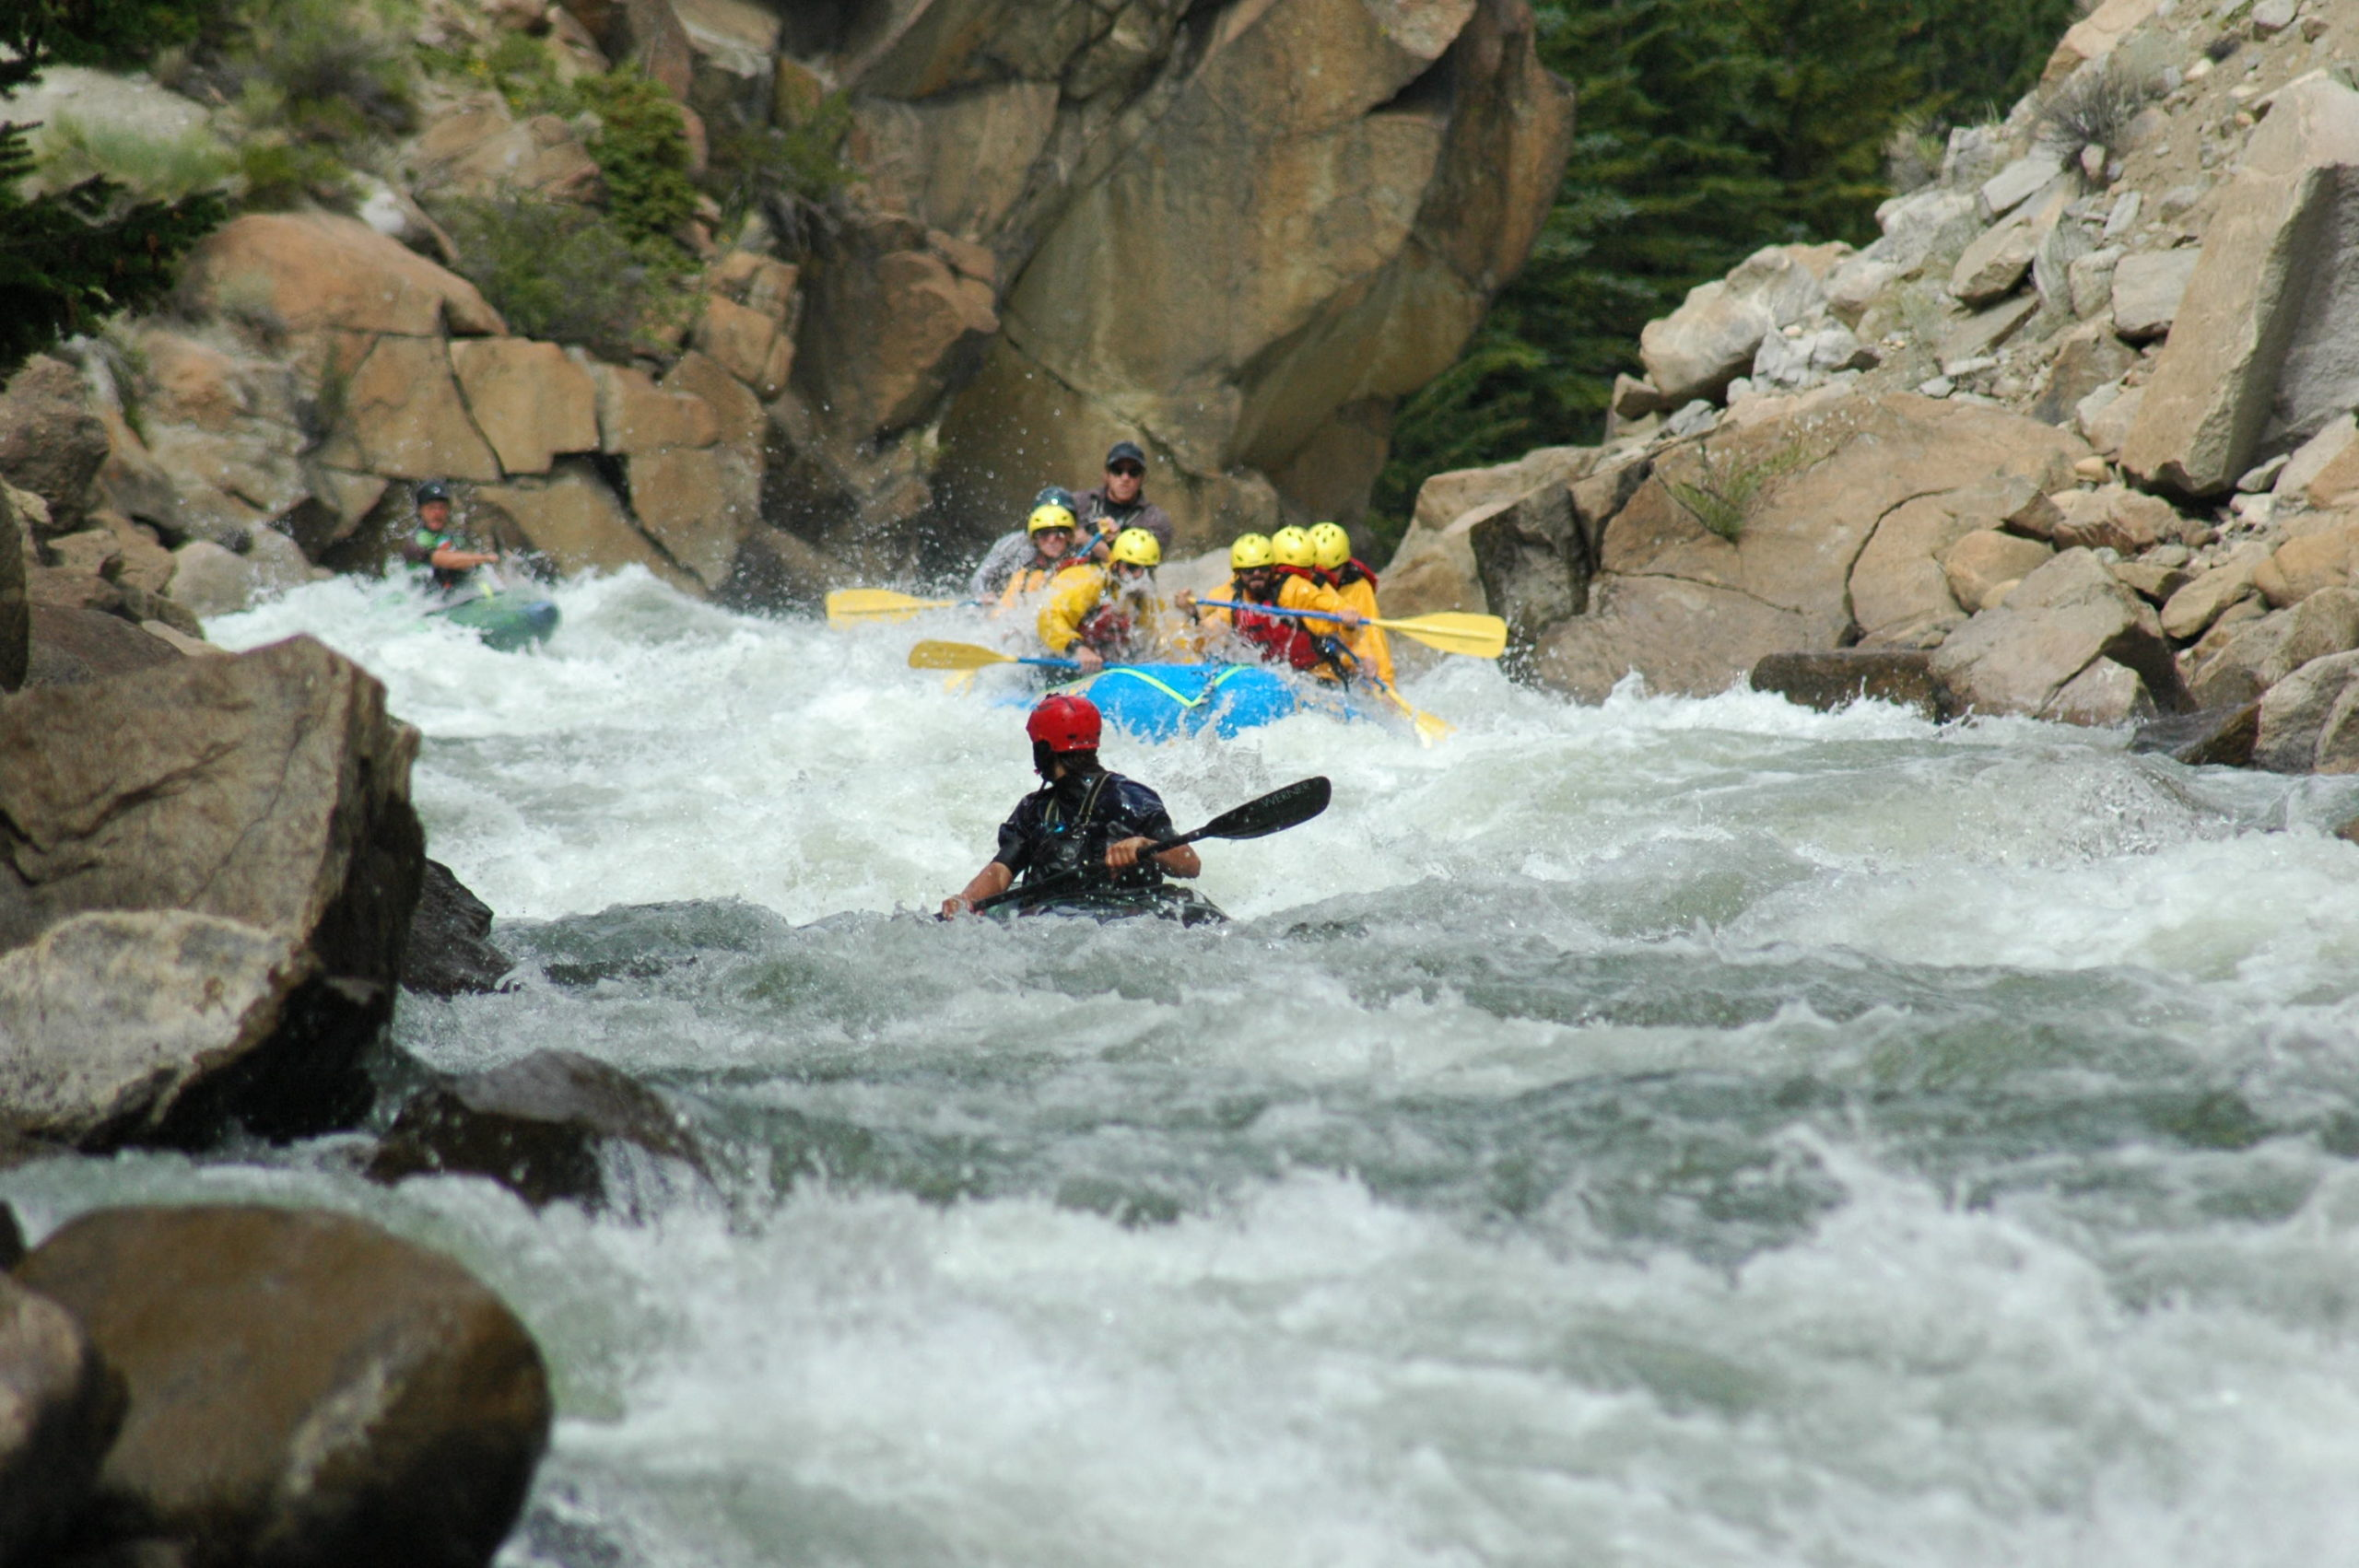 Arkansas River Colorado expert white water rafting